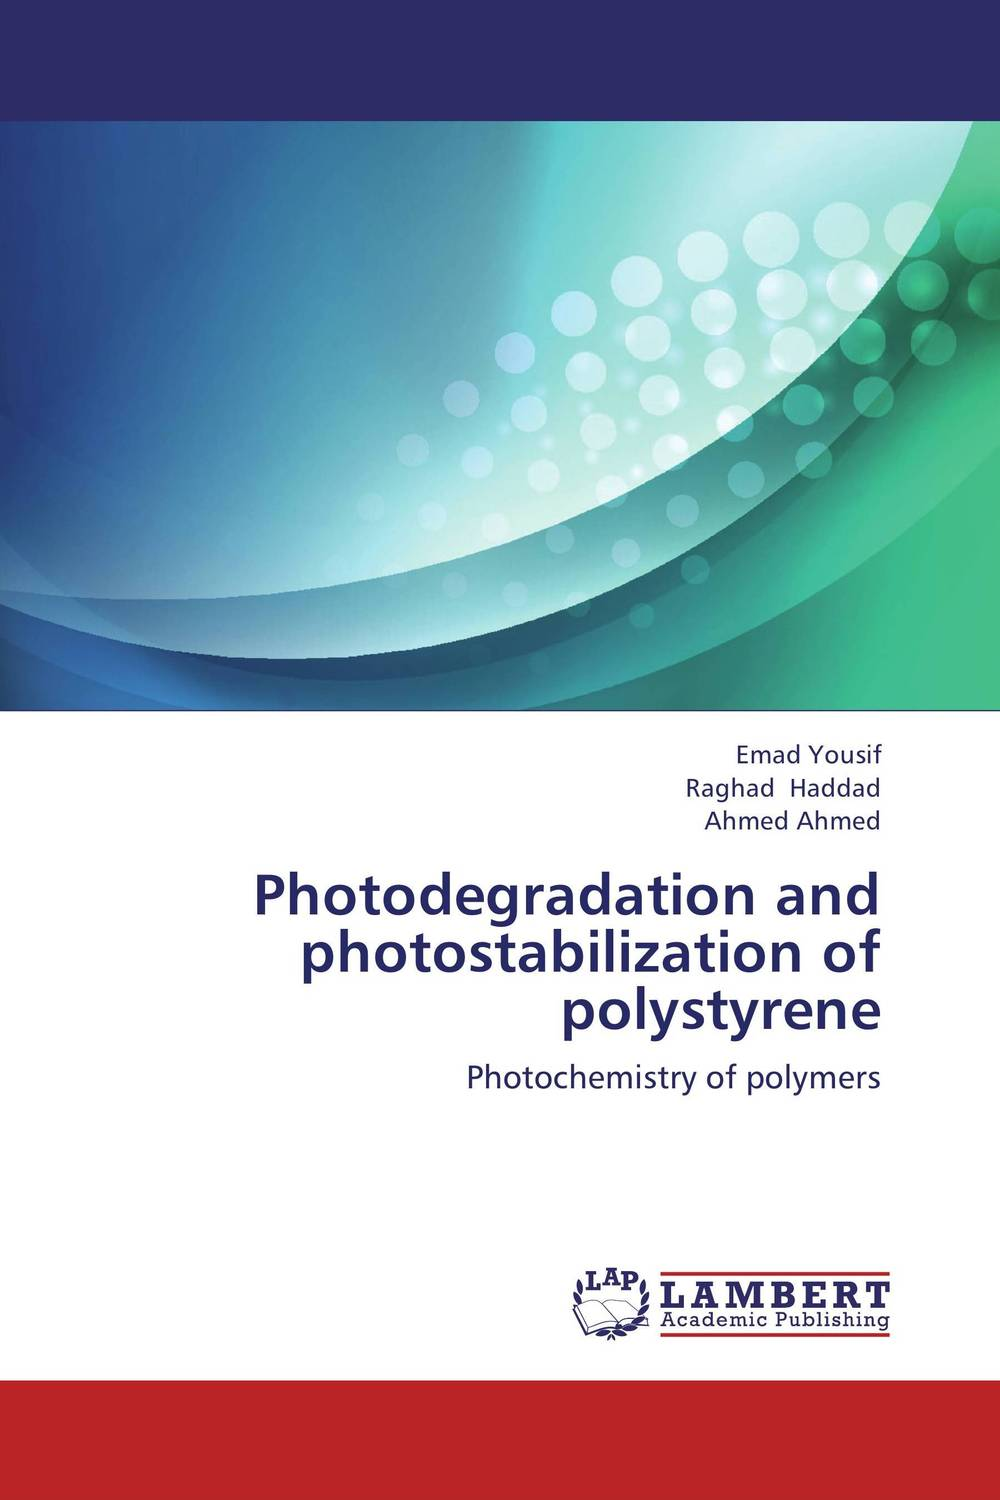 Photodegradation and photostabilization of  polystyrene